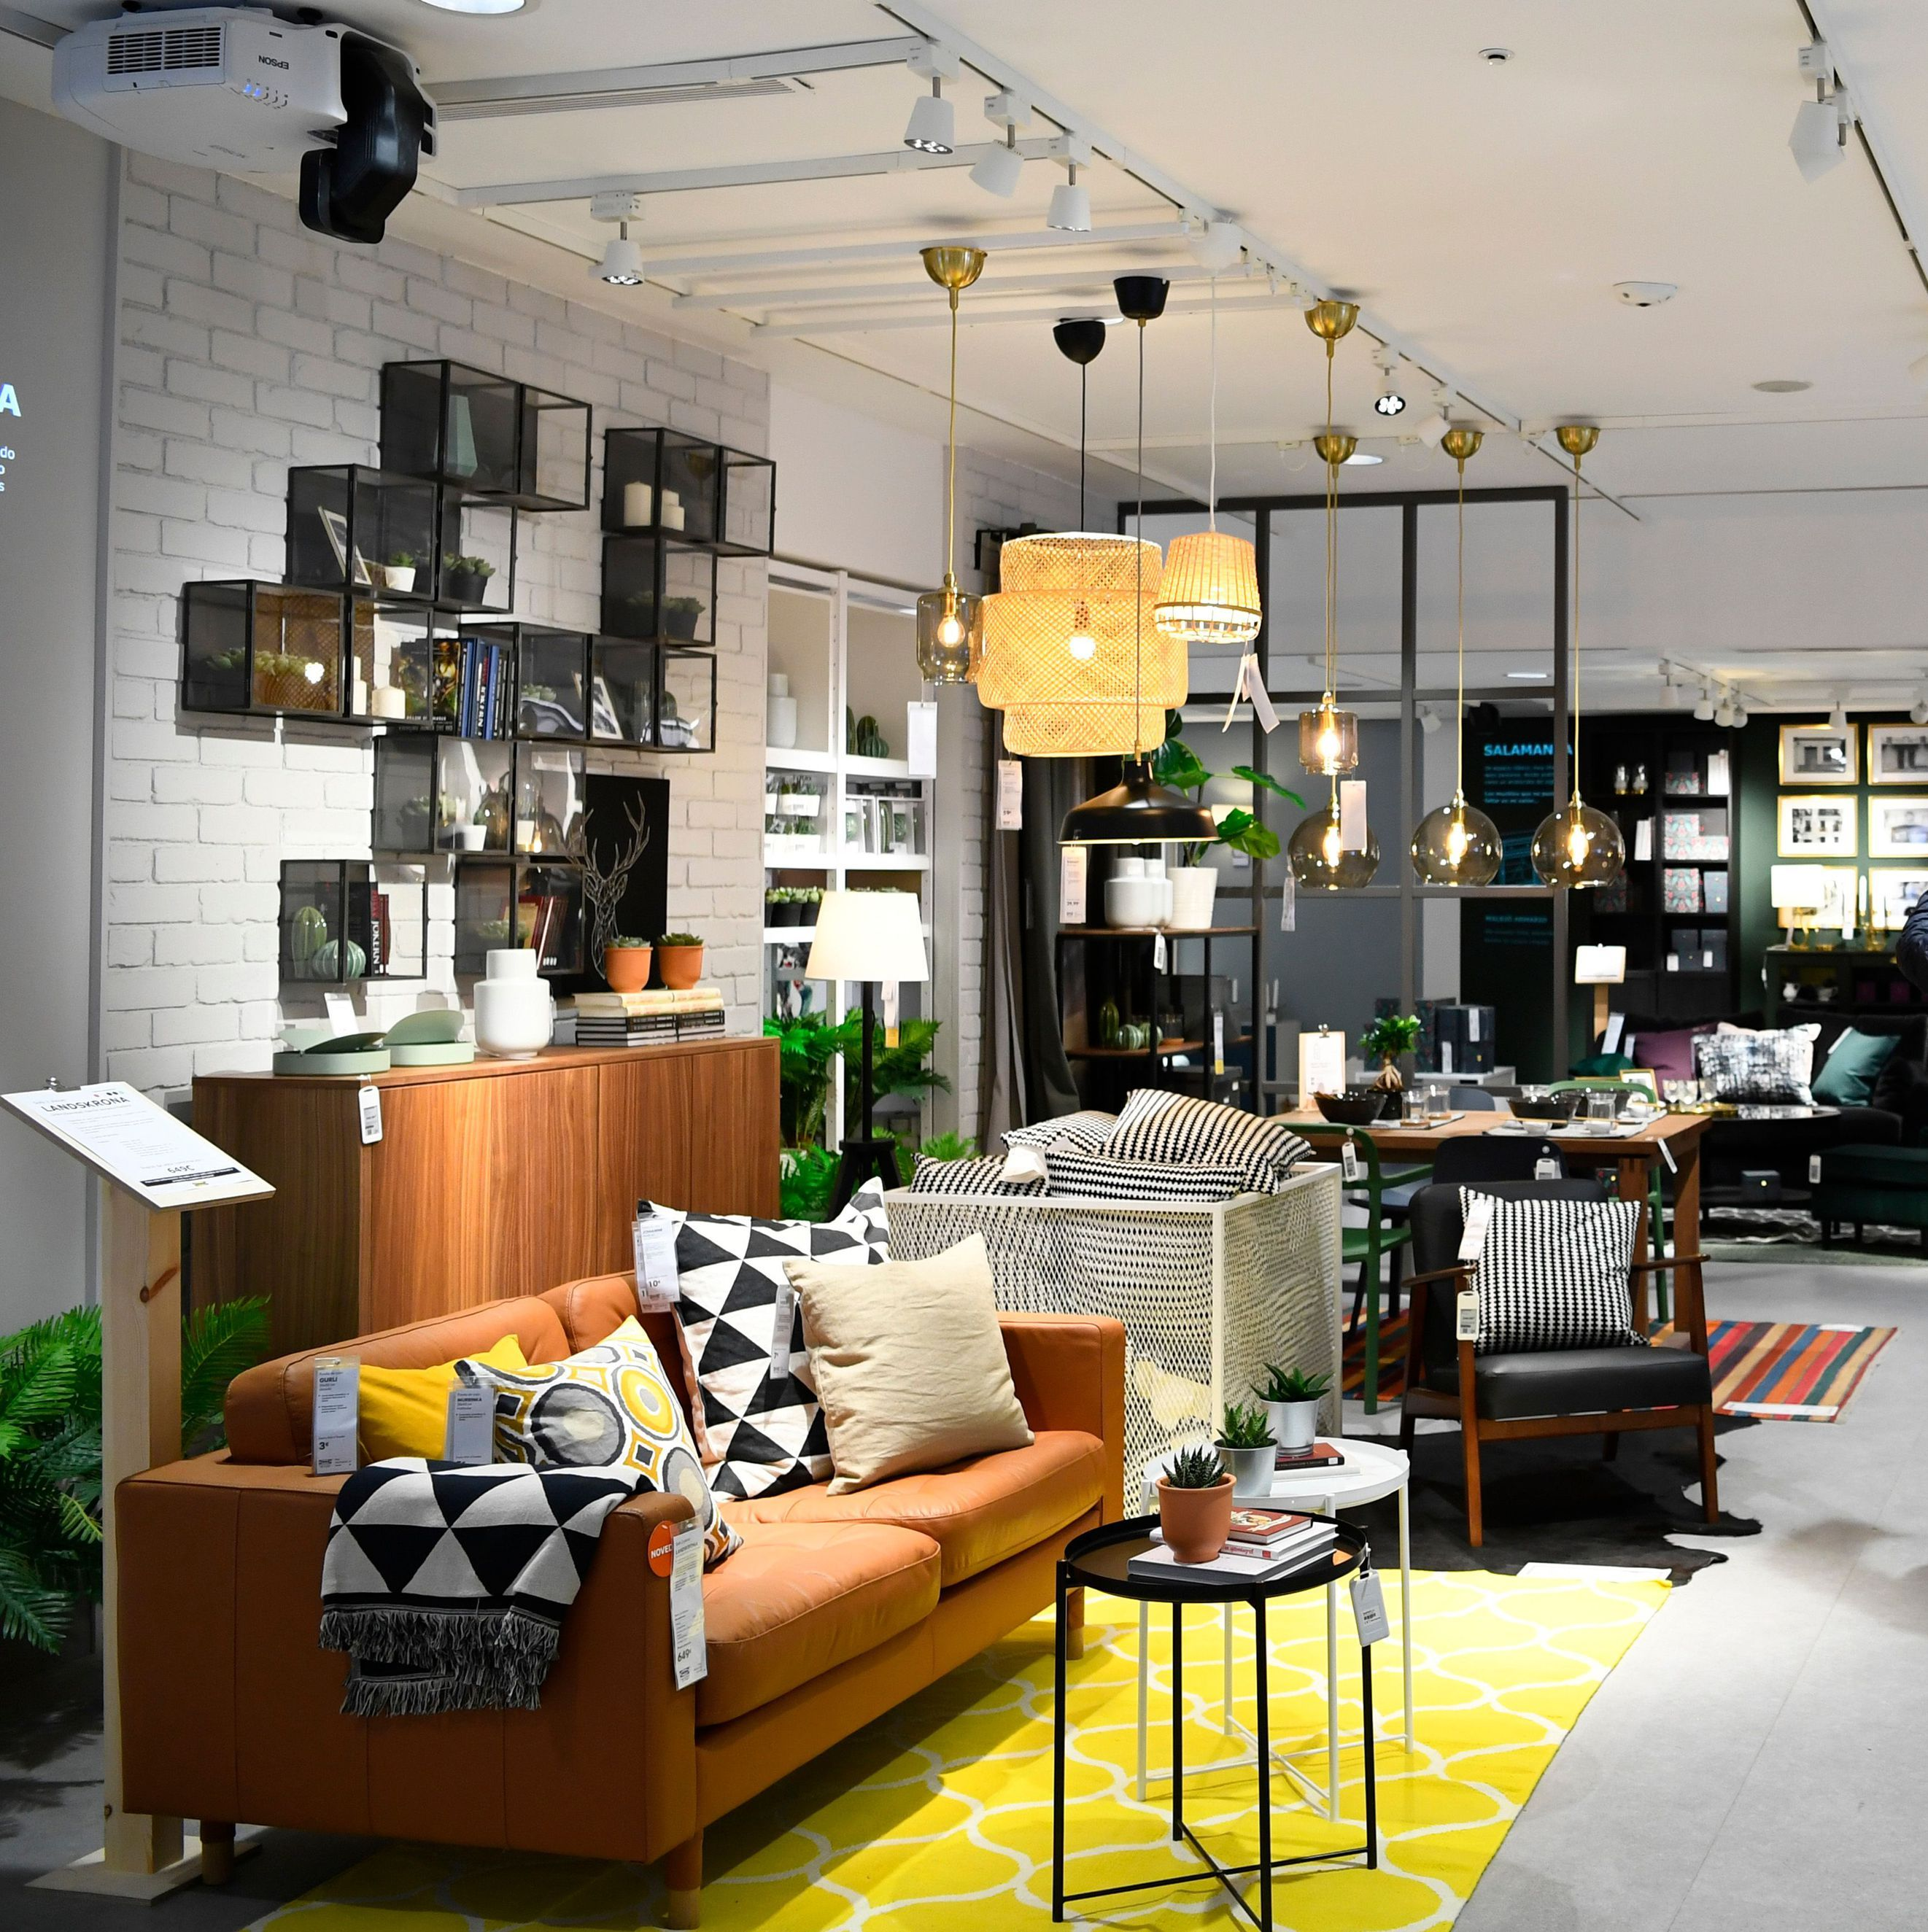 Ikea S Restructuring Plans Will Change Shoppers Online And In Store